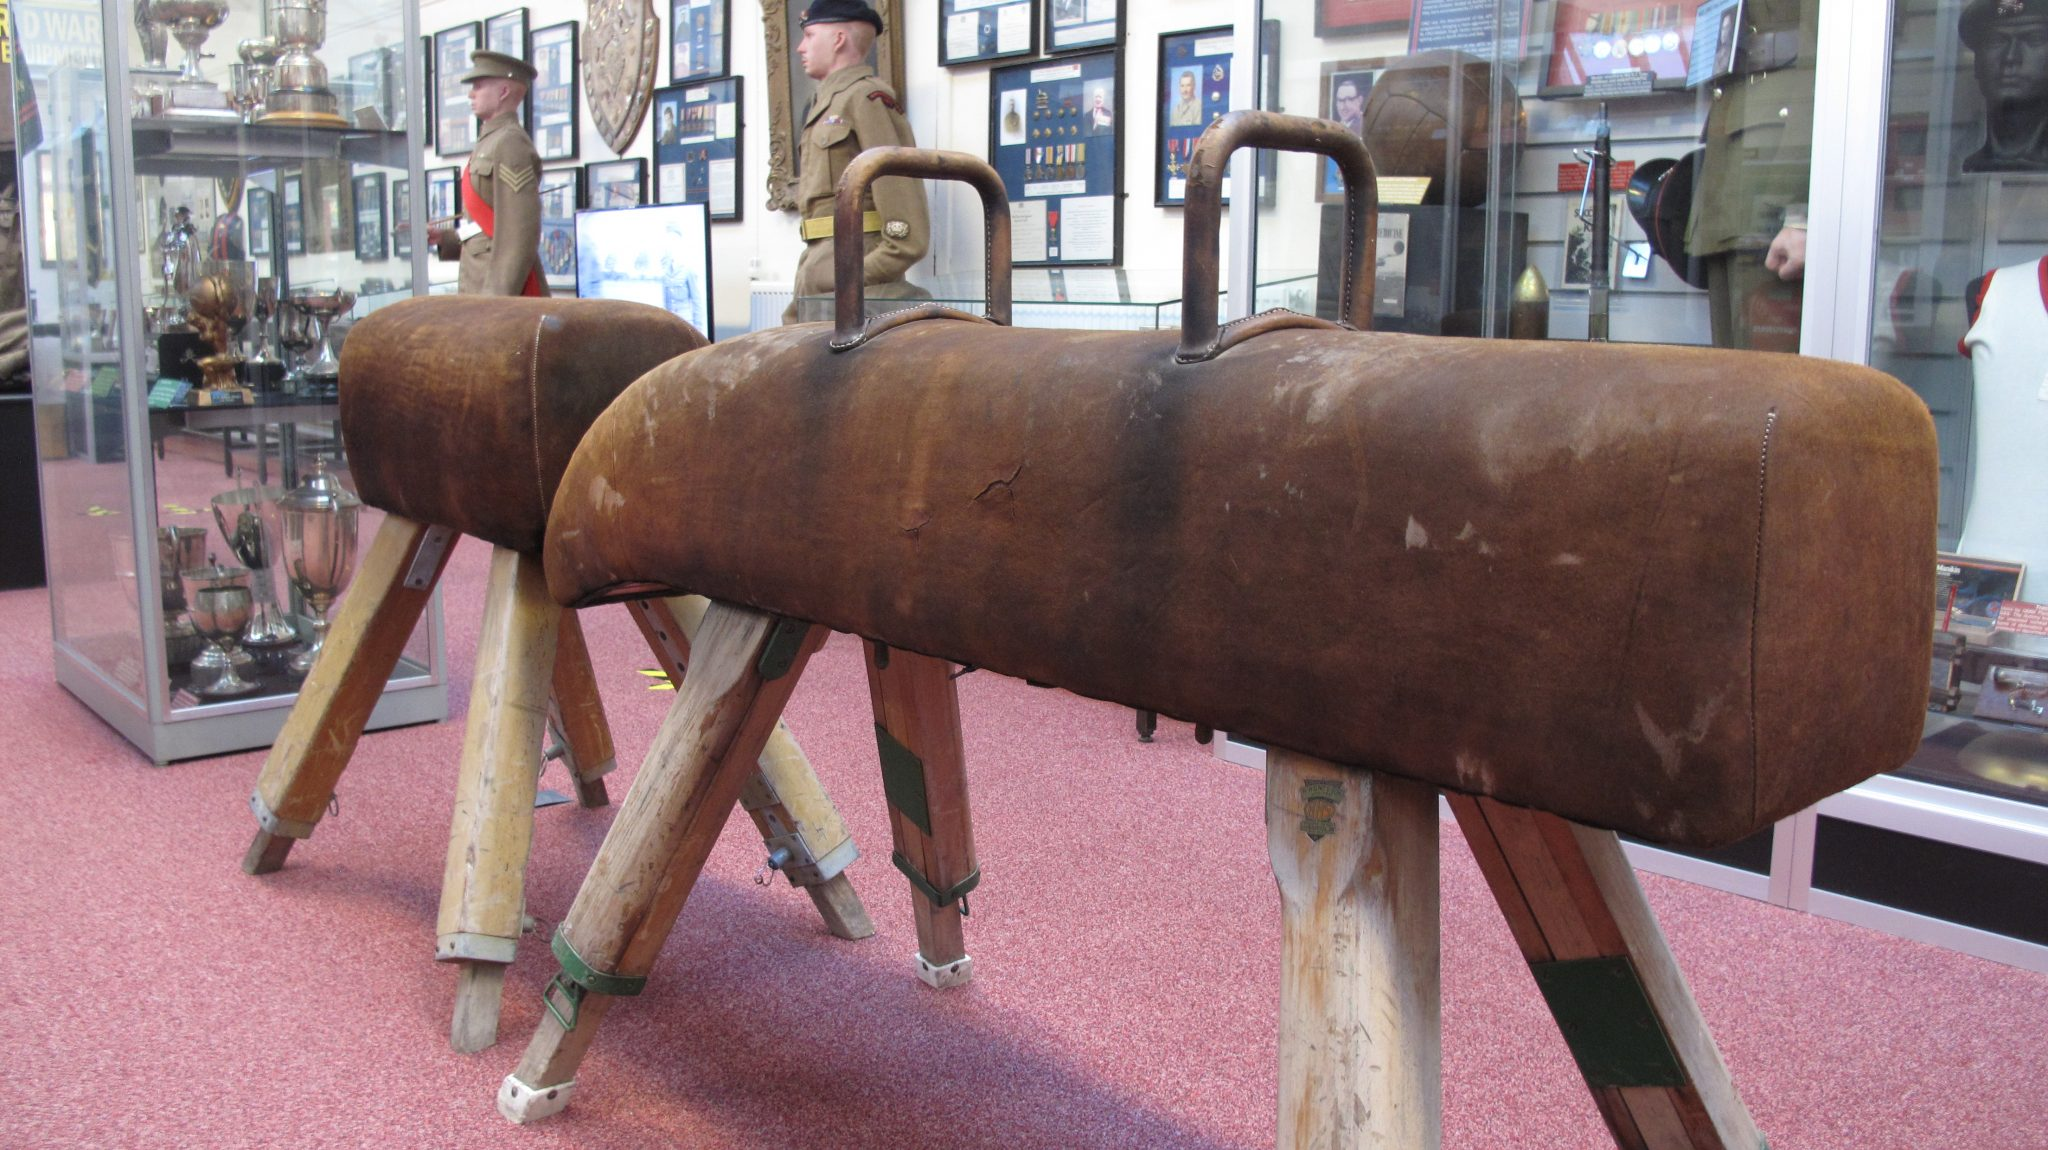 The pommel horse and vaulting buck on display at RAPTC